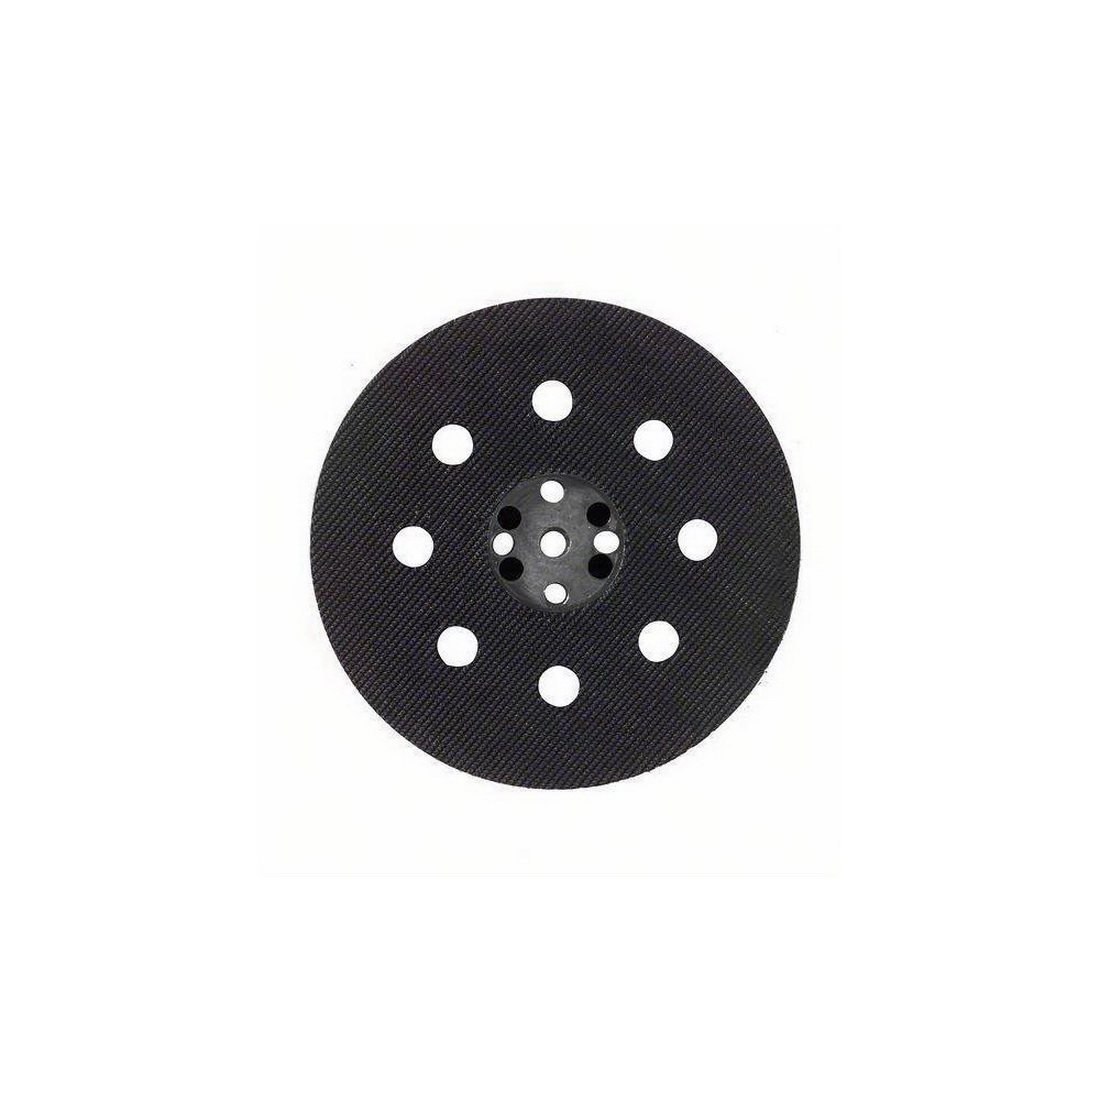 115mm Medium-Hard Orbital Sander Rubber Backing Pad Black